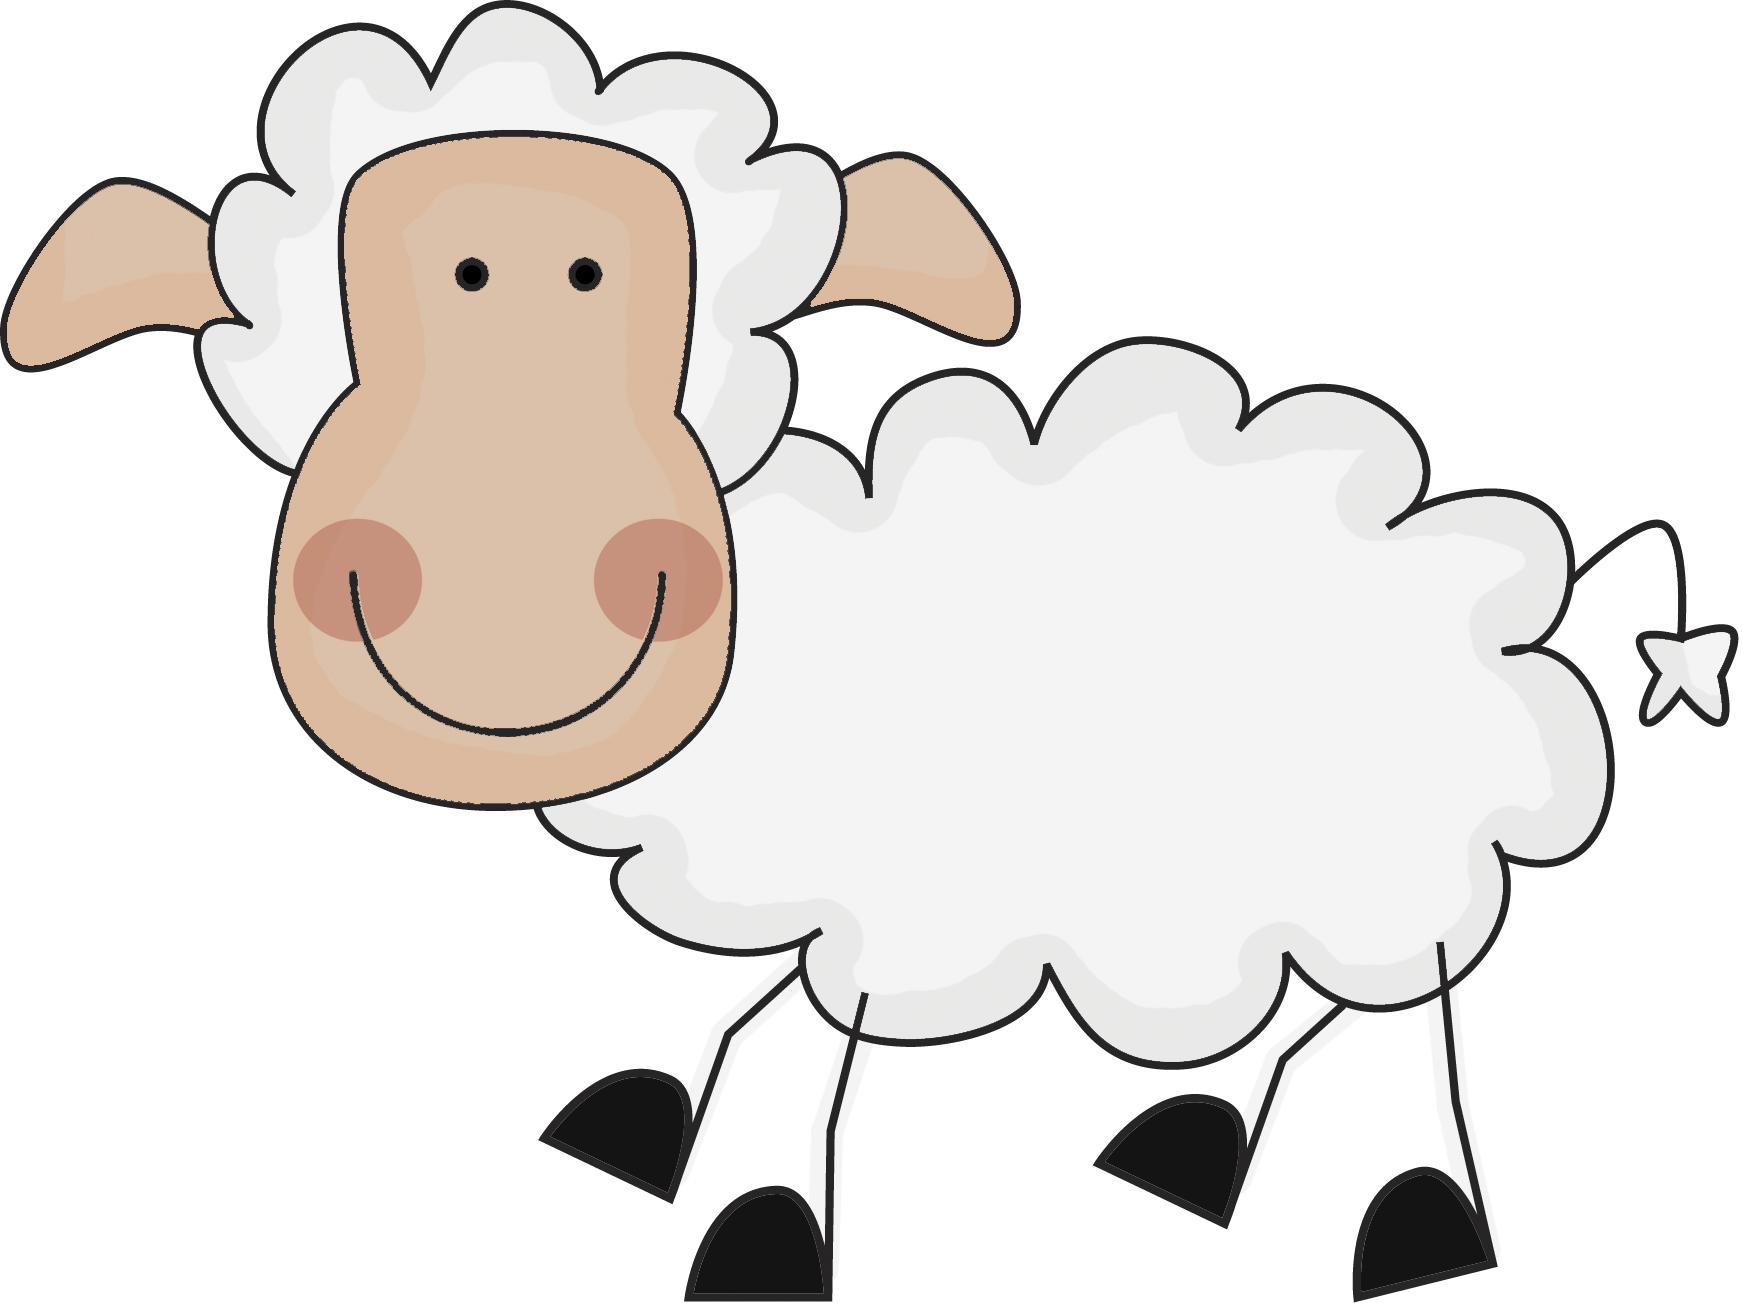 Png Designs Sheep image #23175